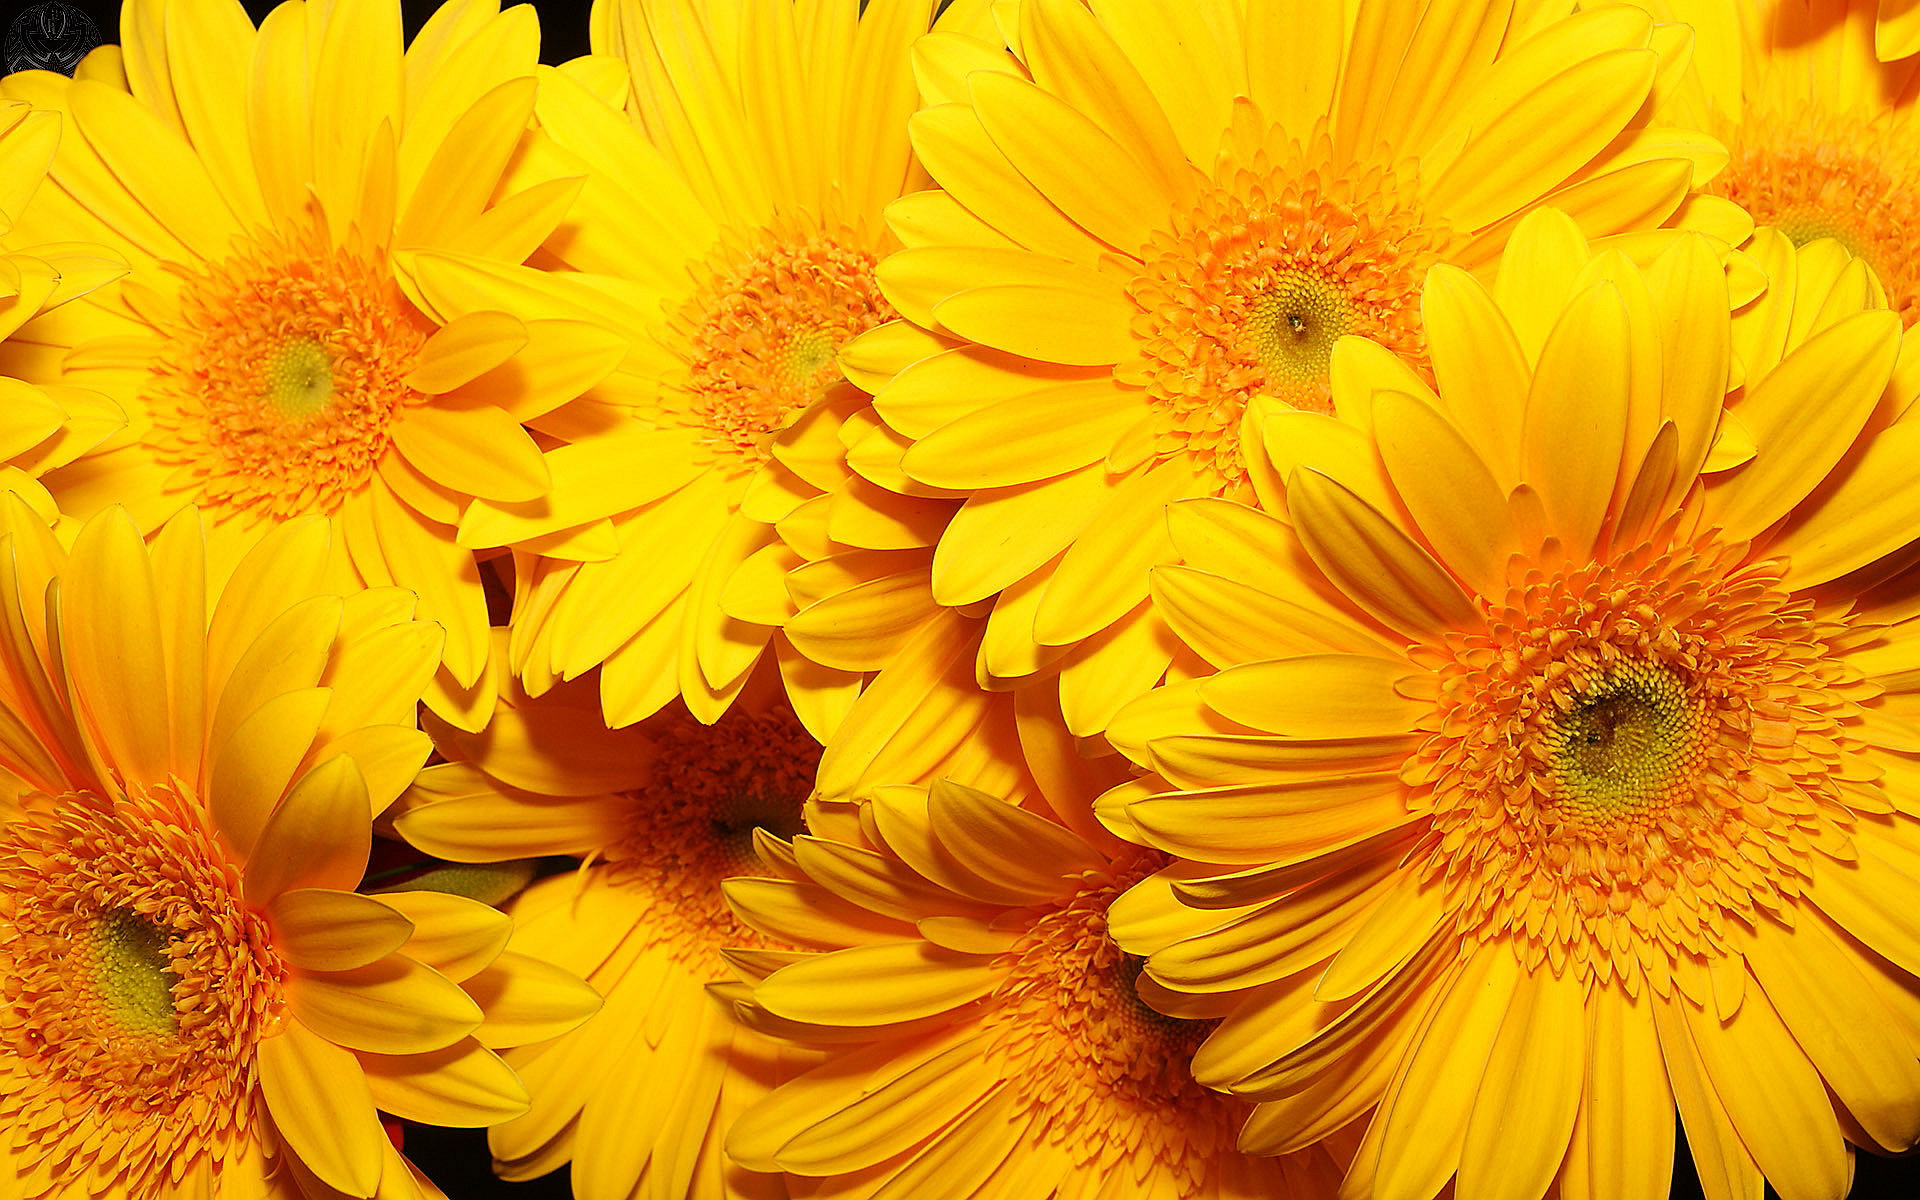 Yellow flowers image black and white stock Yellow flowers hd Wallpapers | Pictures black and white stock